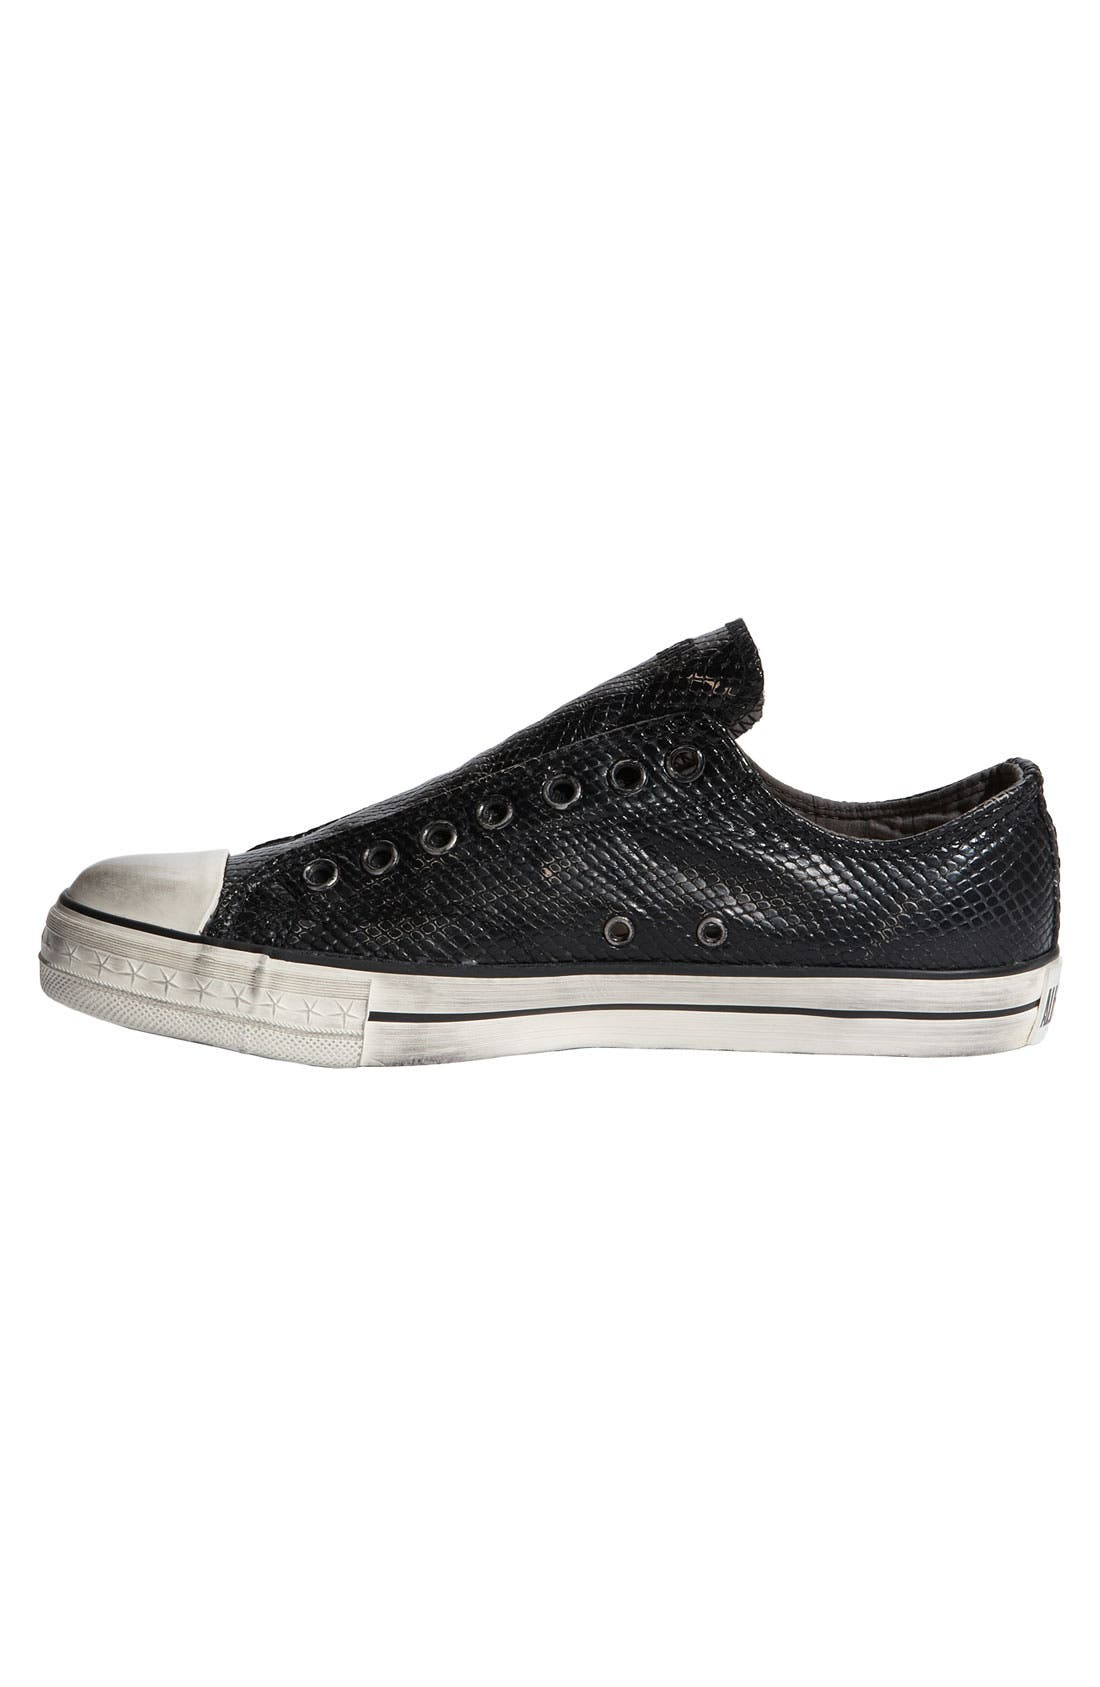 Alternate Image 3  - Converse Chuck Taylor® Textured Leather Slip-On